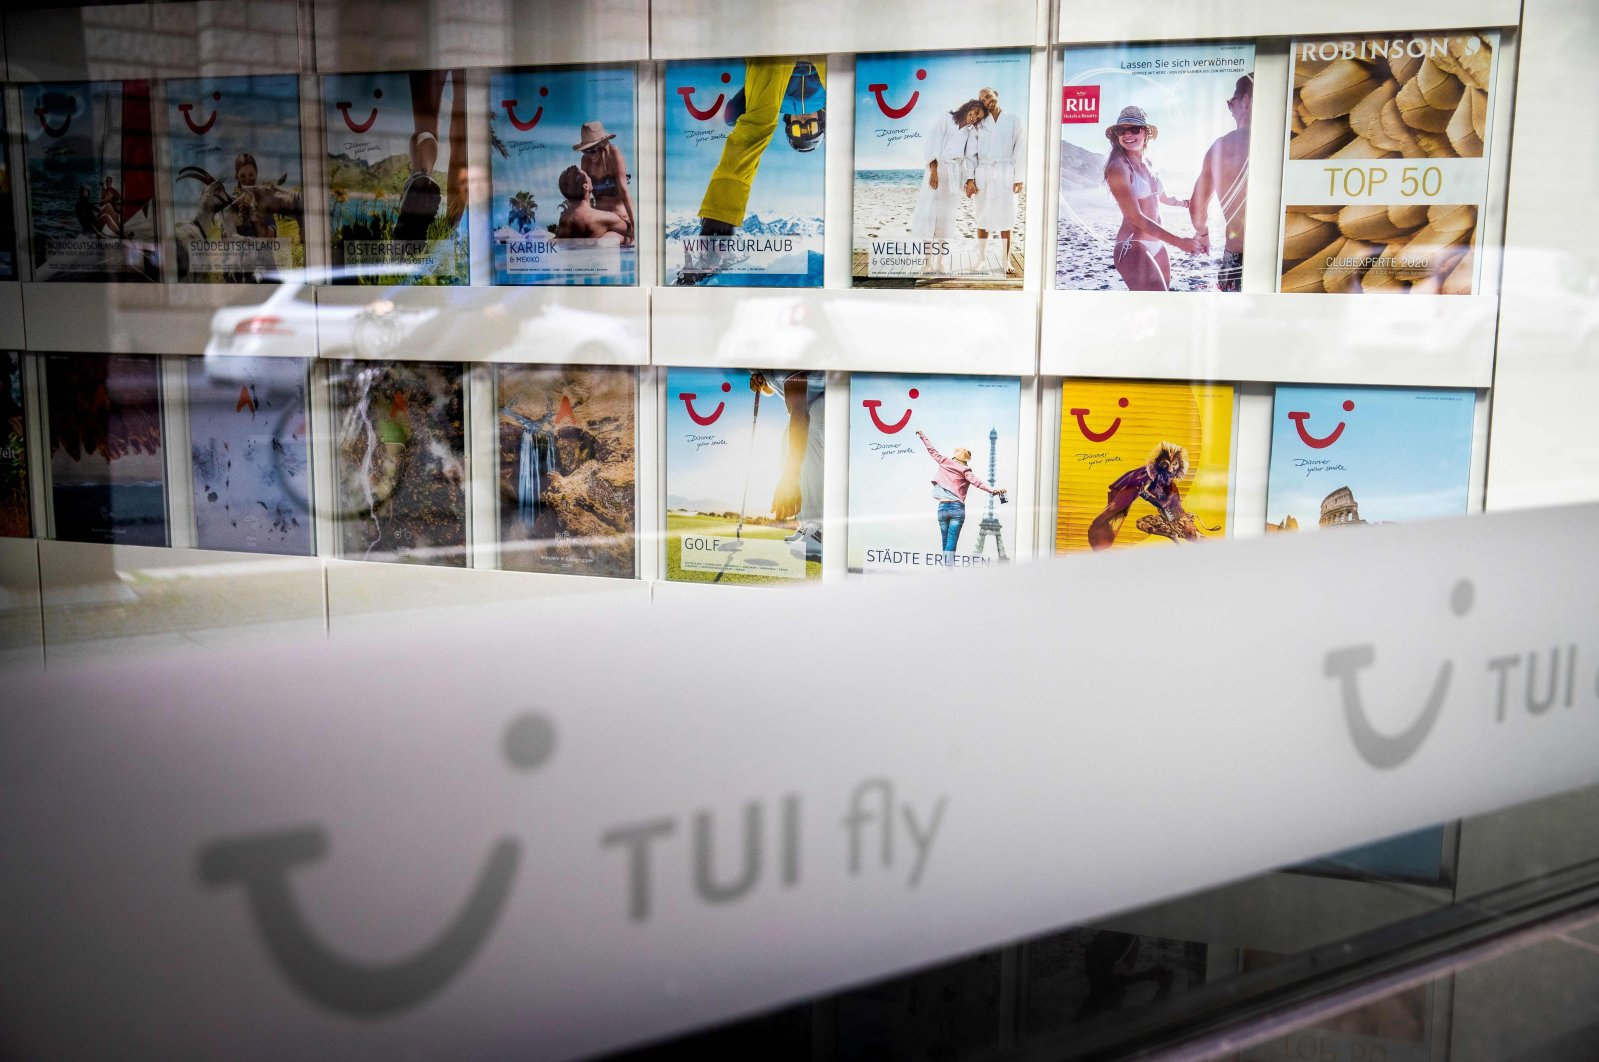 This file photo shows travel brochures inside a then closed branch of the travel firm TUI in Berlin amid the coronavirus pandemic, May 13, 2020. (AFP Photo)